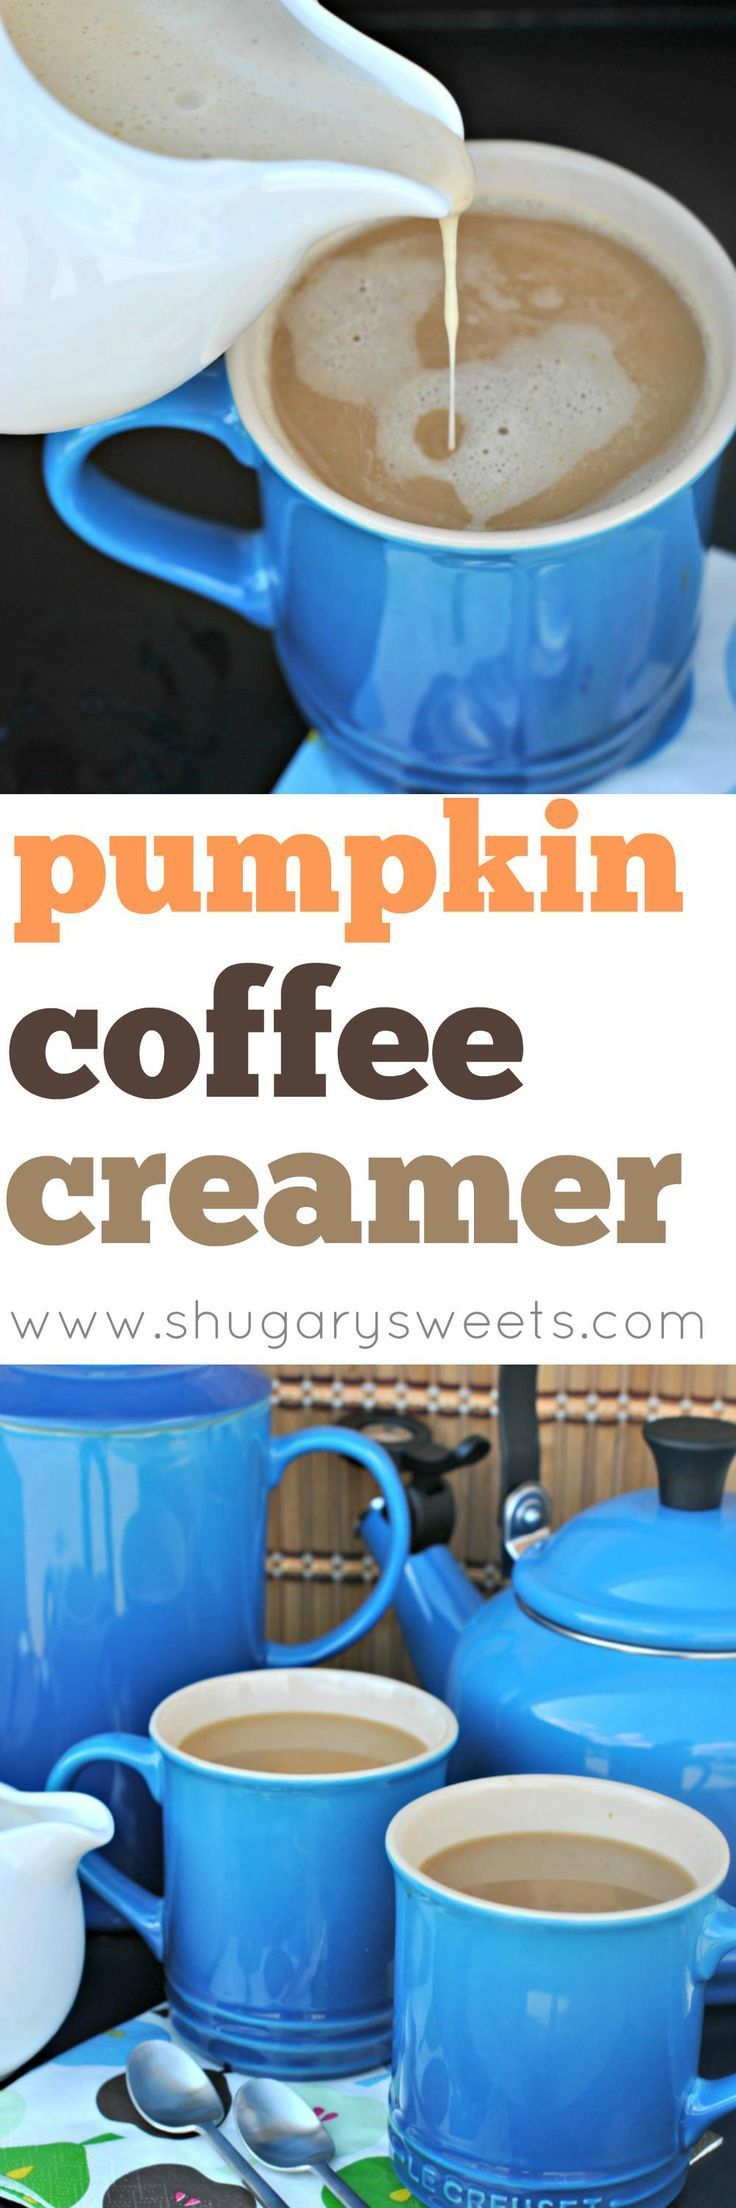 Make your own Pumpkin Spice Coffee Creamer at home with this easy, delicious recipe! Happy Fall!